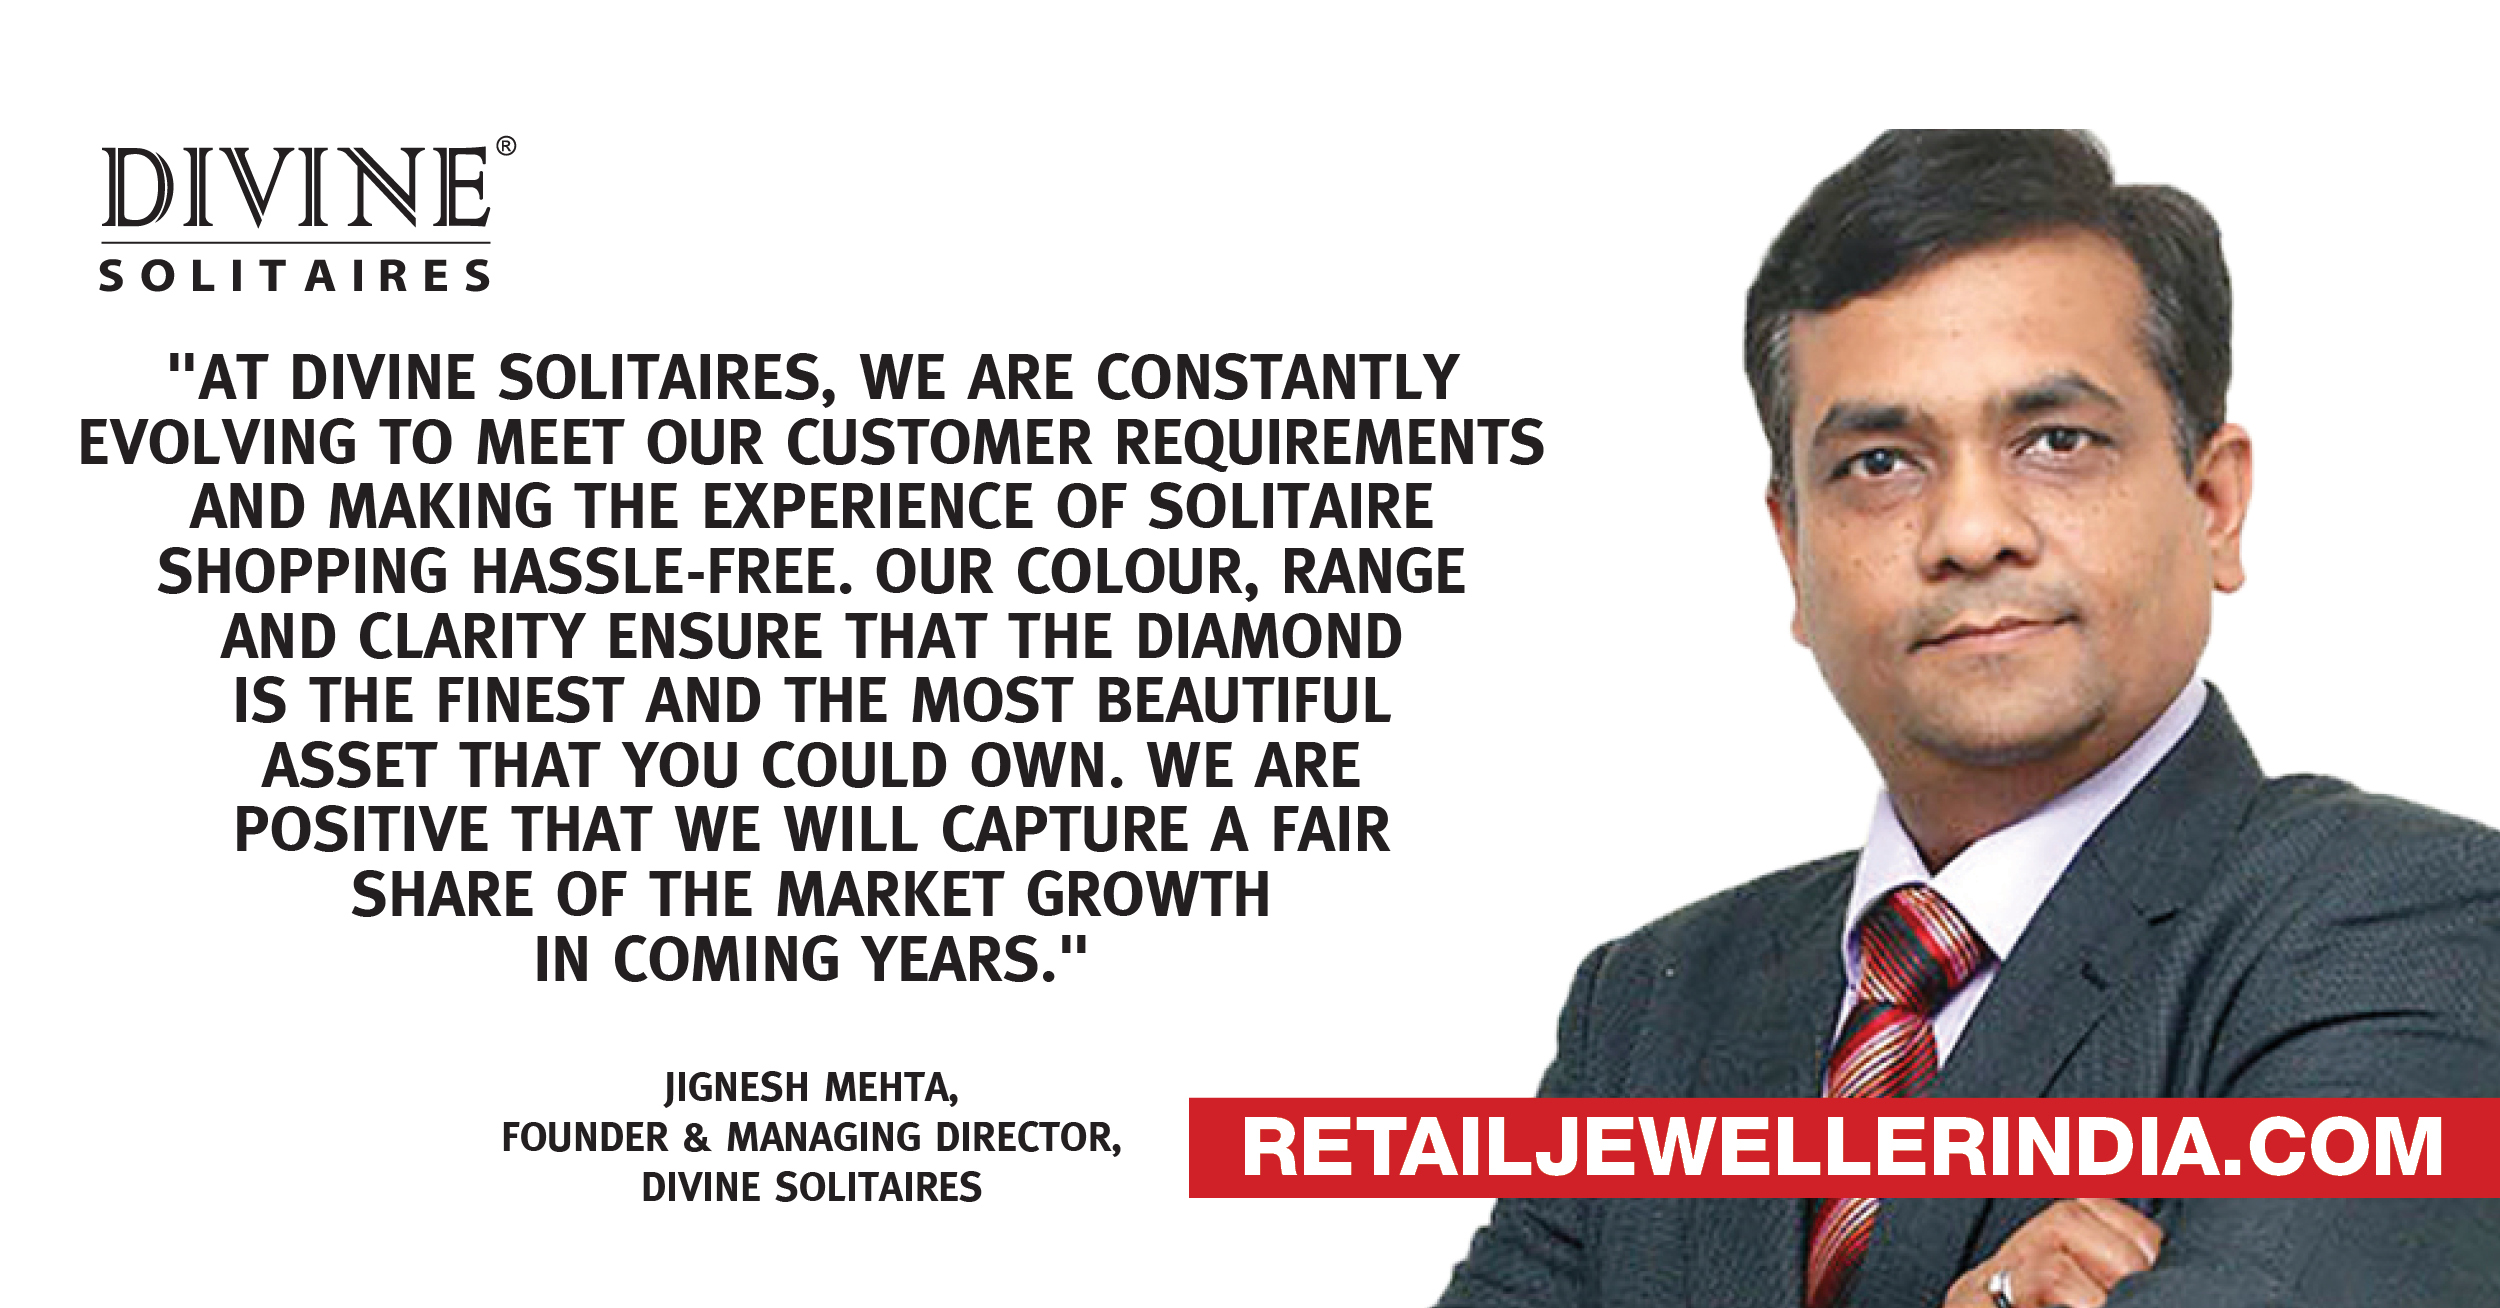 Jignesh Mehta, Founder and Managing Director ofDivineSolitaires